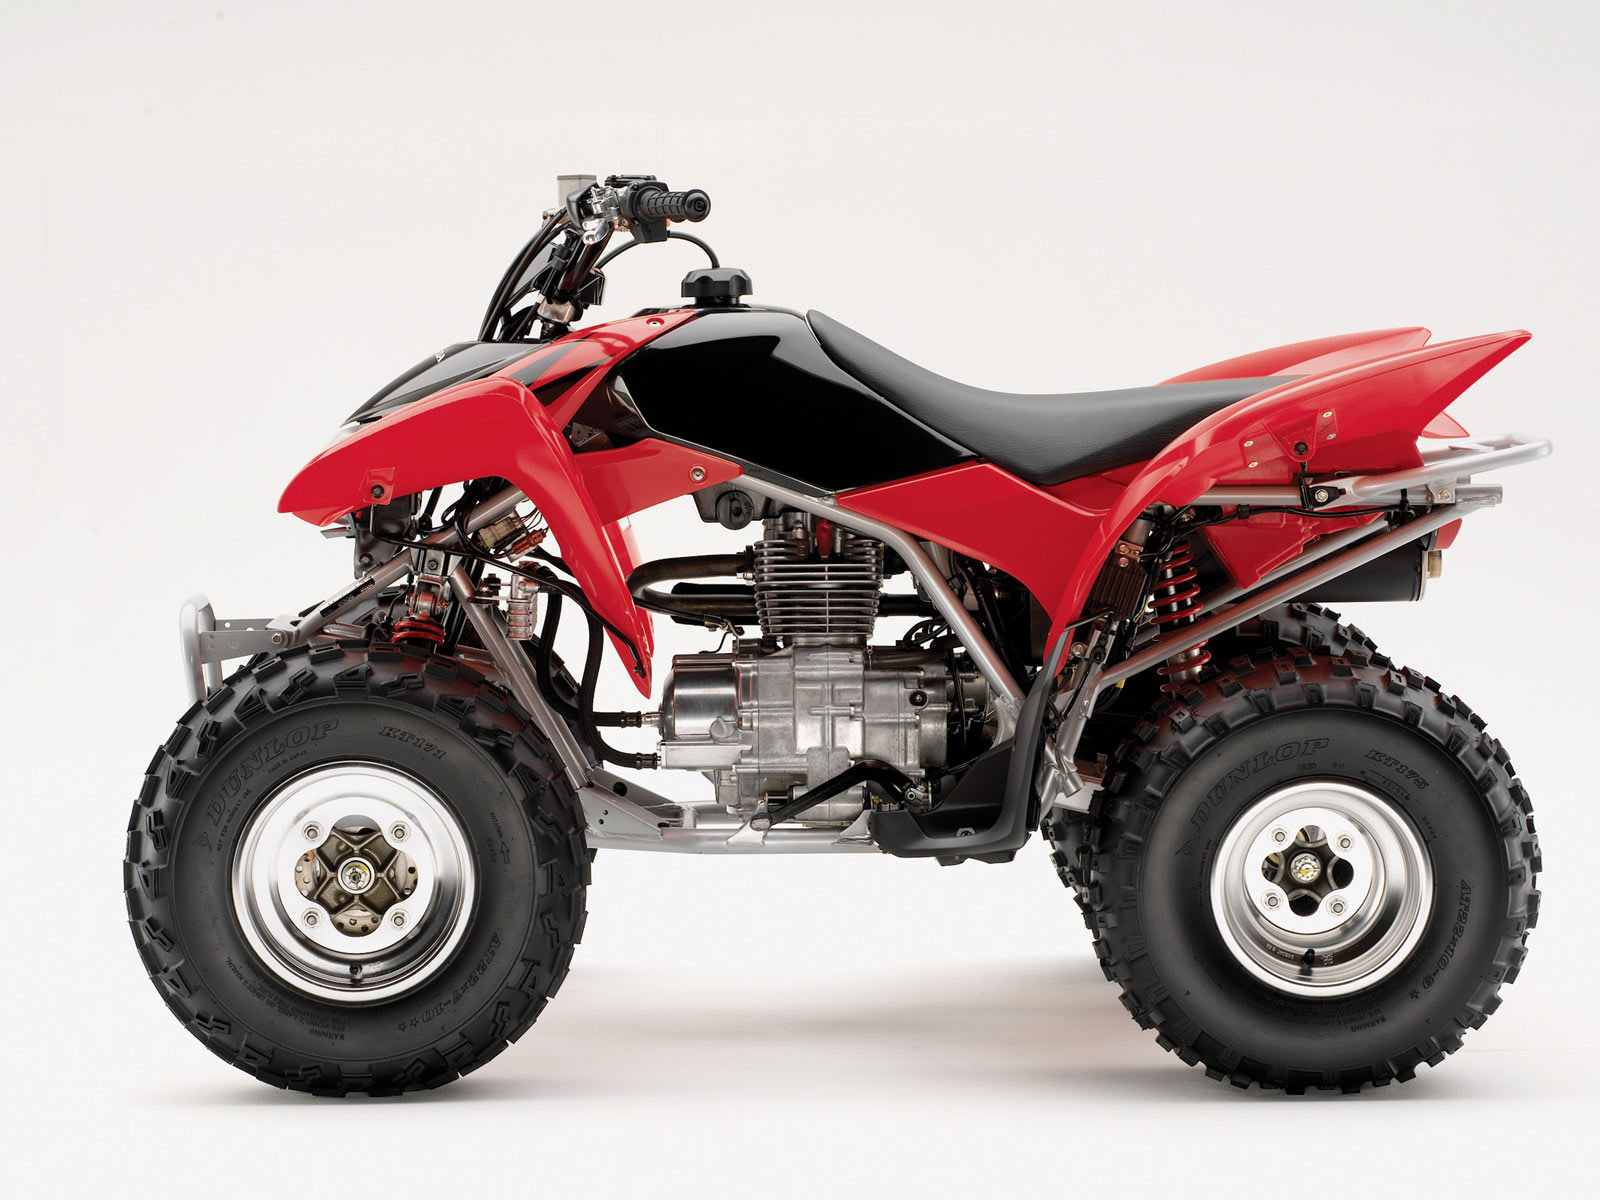 2006 honda trx trx 250 ex atv wallpaper. Black Bedroom Furniture Sets. Home Design Ideas